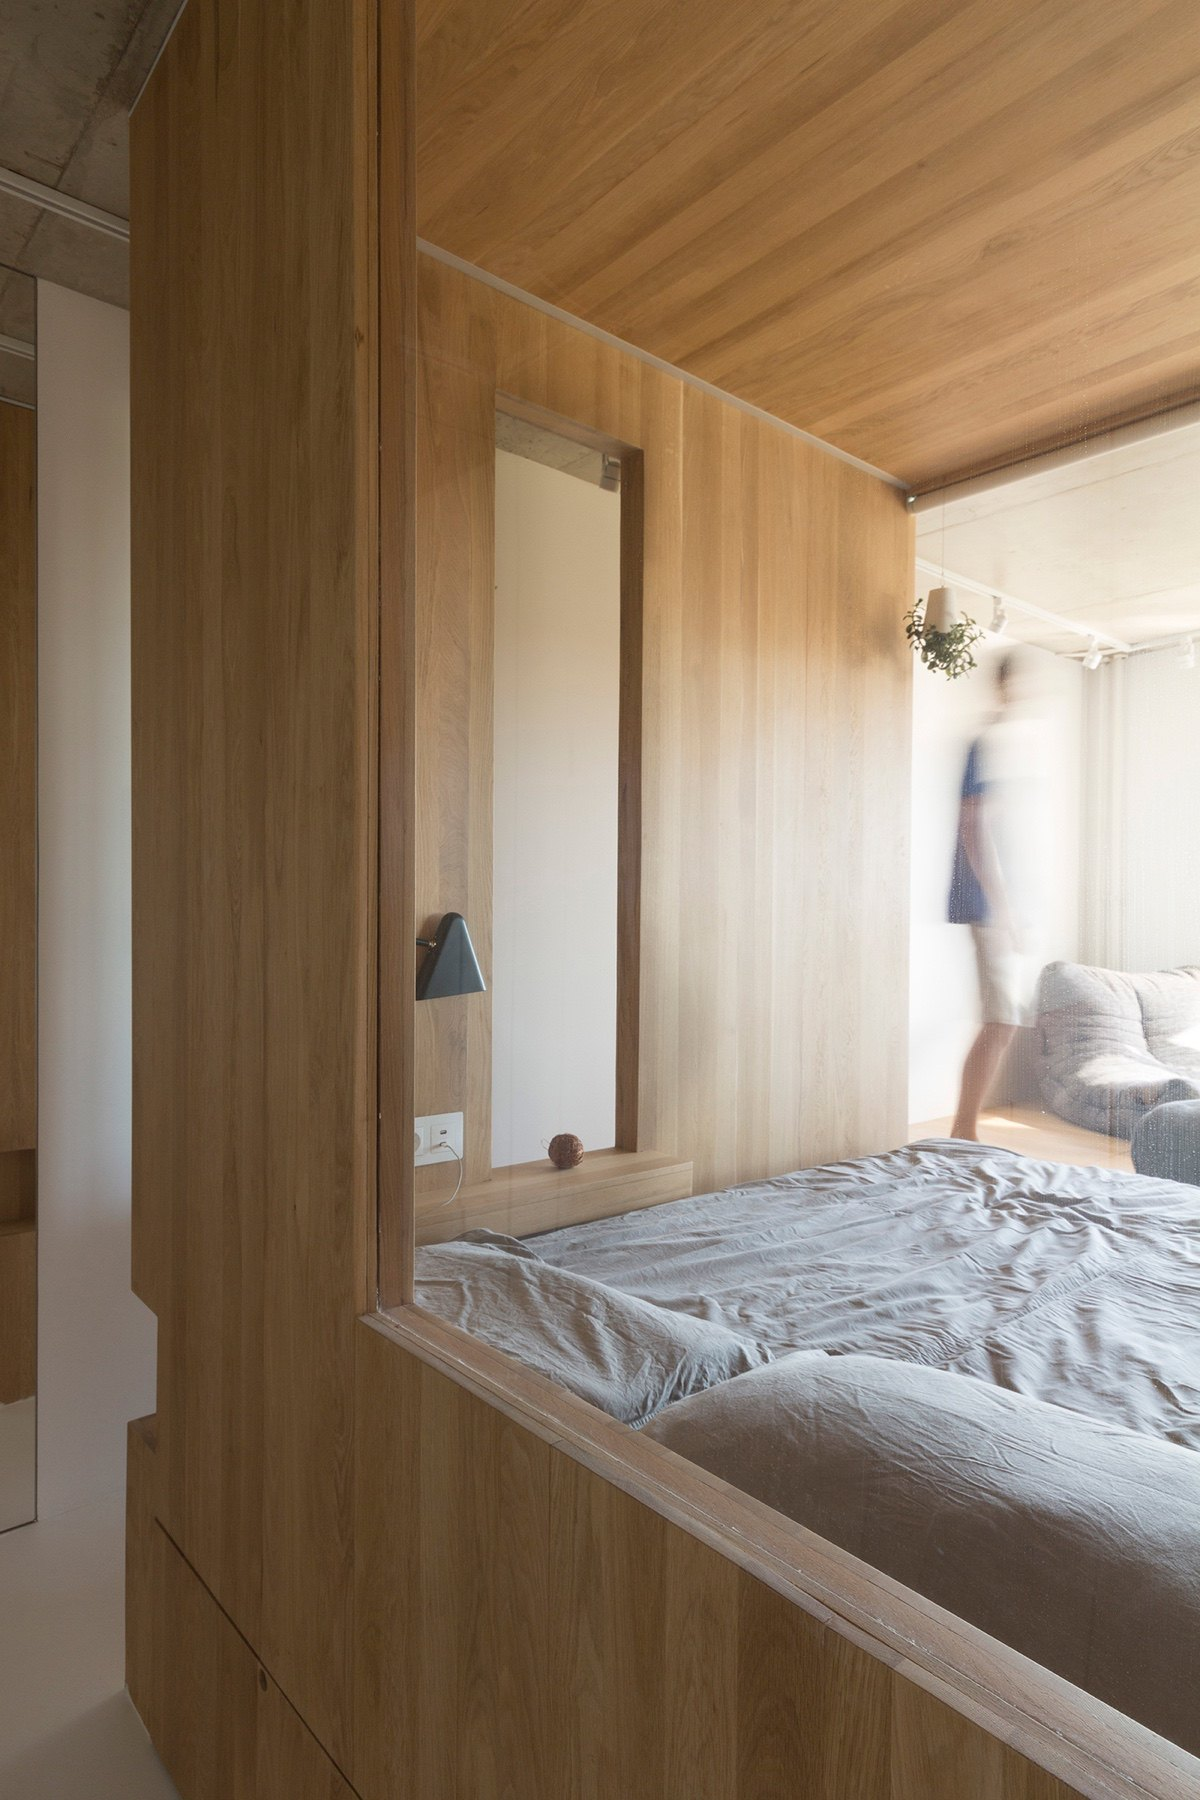 Two Indoor Windowed Bedroom Grey Bedding Wooden Walling - Super small studio apartment under 50 square meters includes floor plan